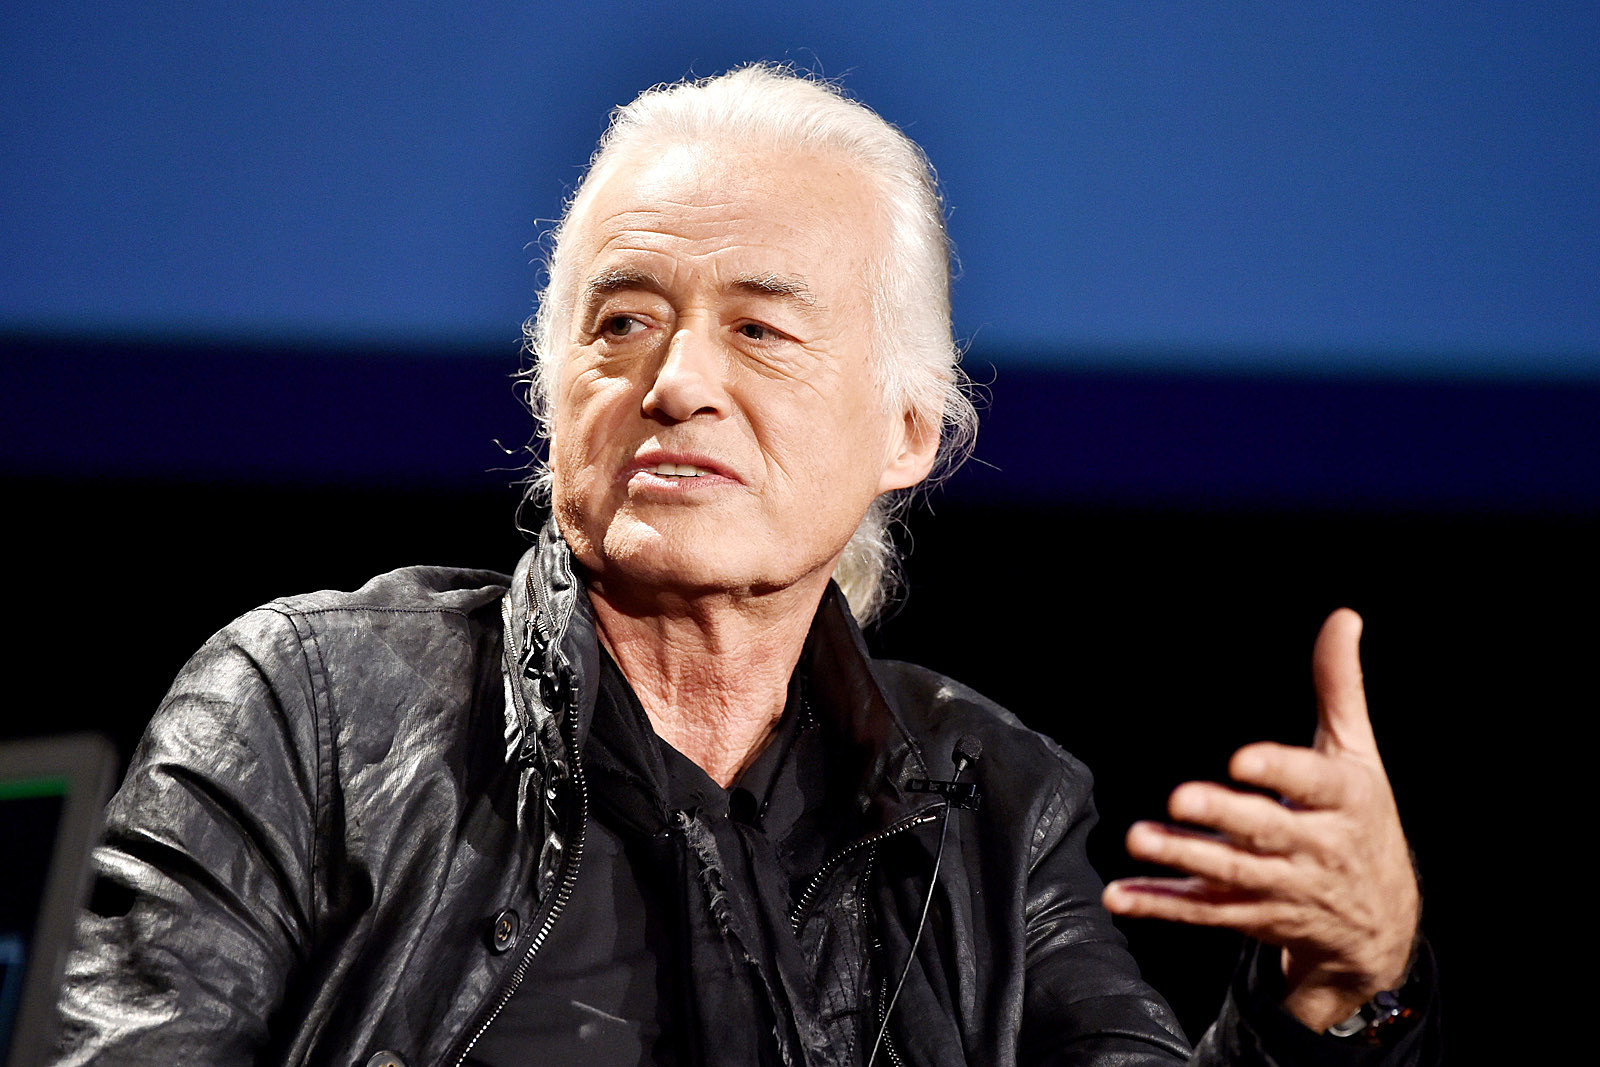 New 'Yardbirds '68' Album Featuring Jimmy Page to Be Released